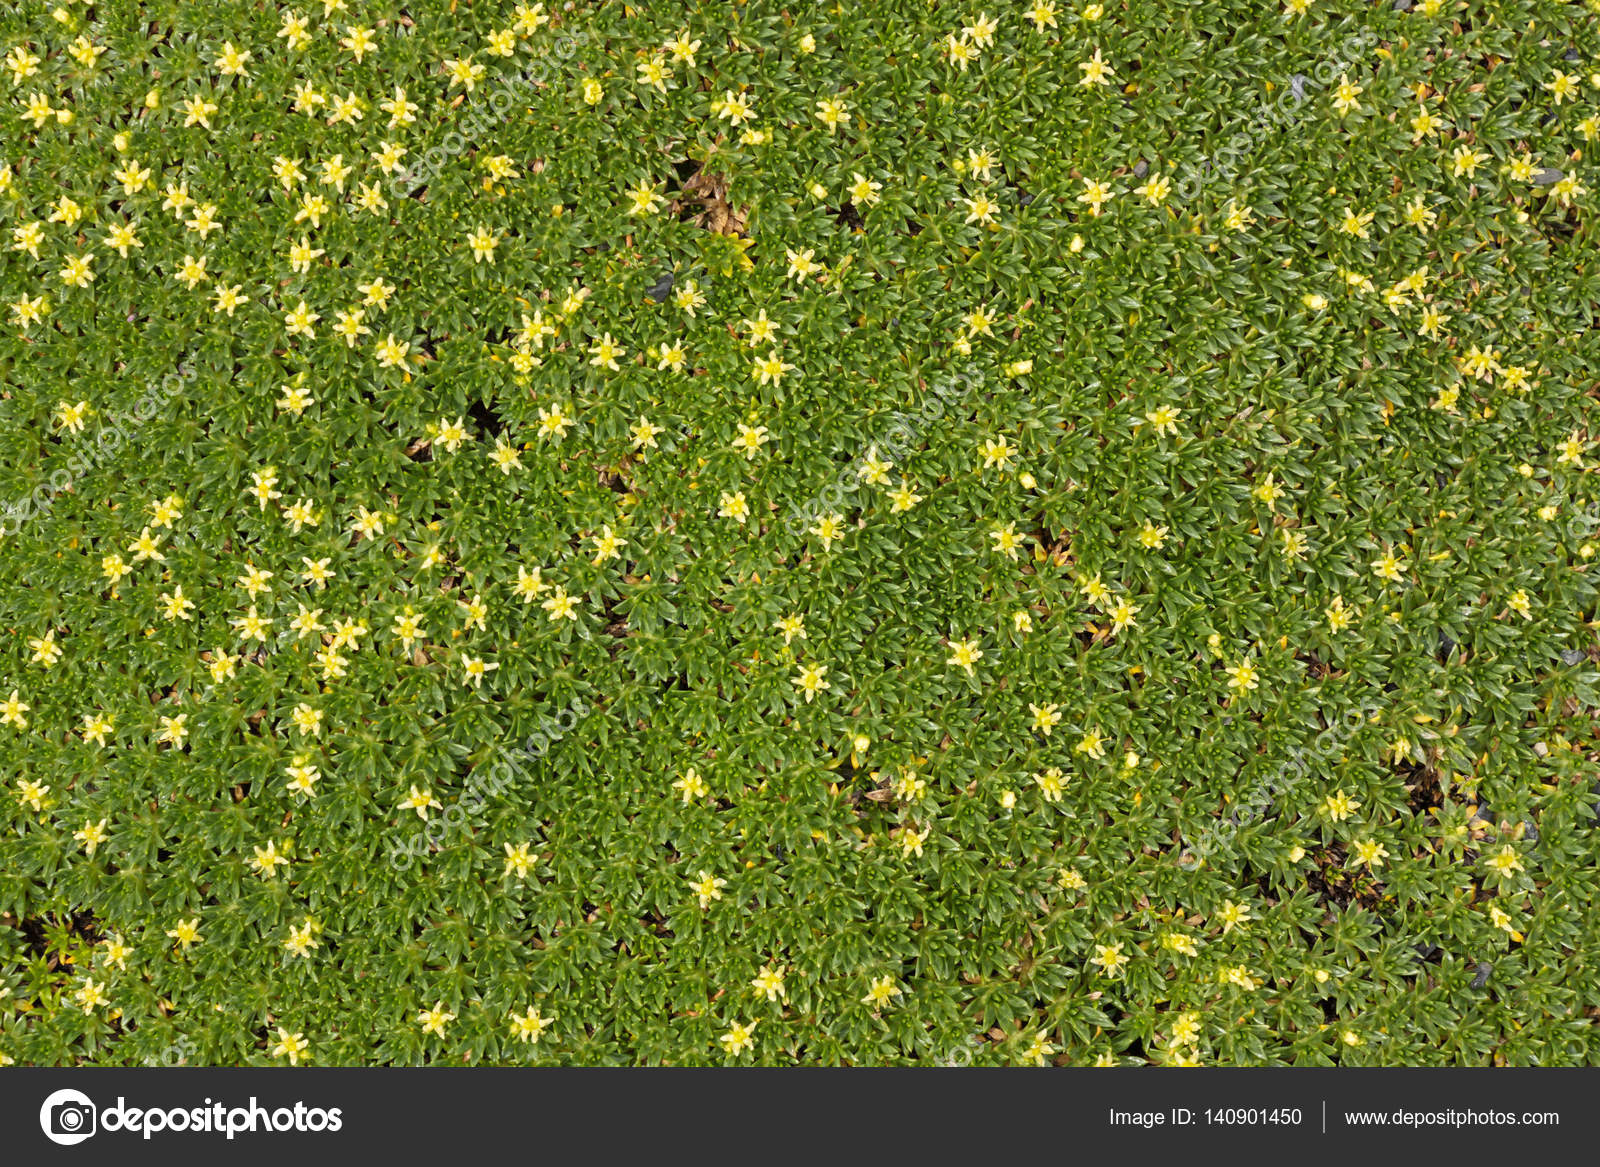 Ground cover plant with small yellow flowers stock photo ground cover plant with small yellow flowers stock photo mightylinksfo